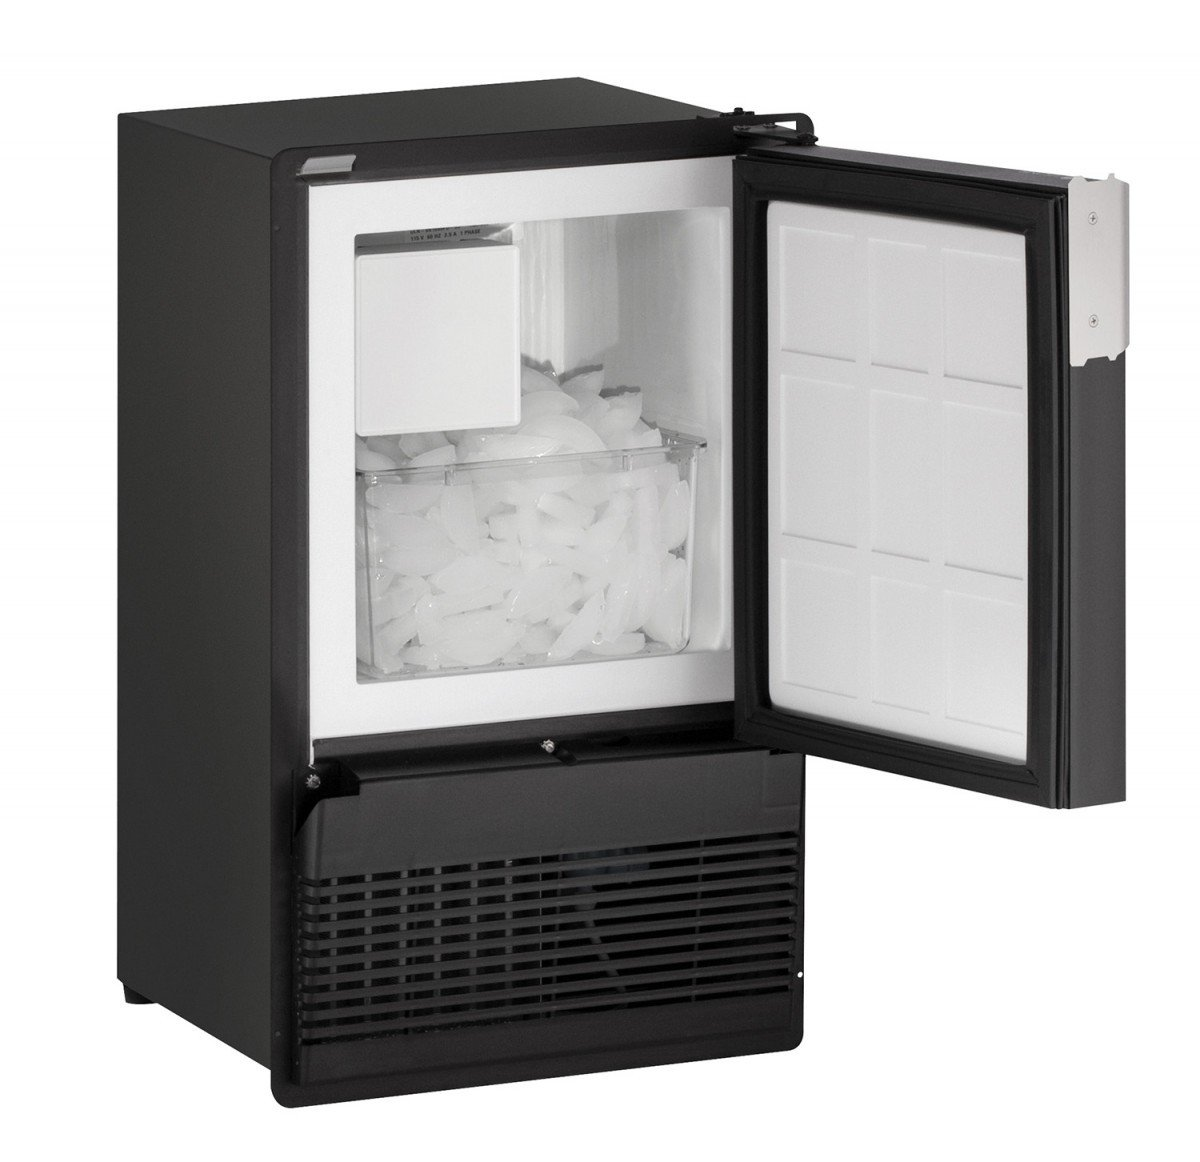 U-Line BI95FCB Marine & RV Ice Maker - Black